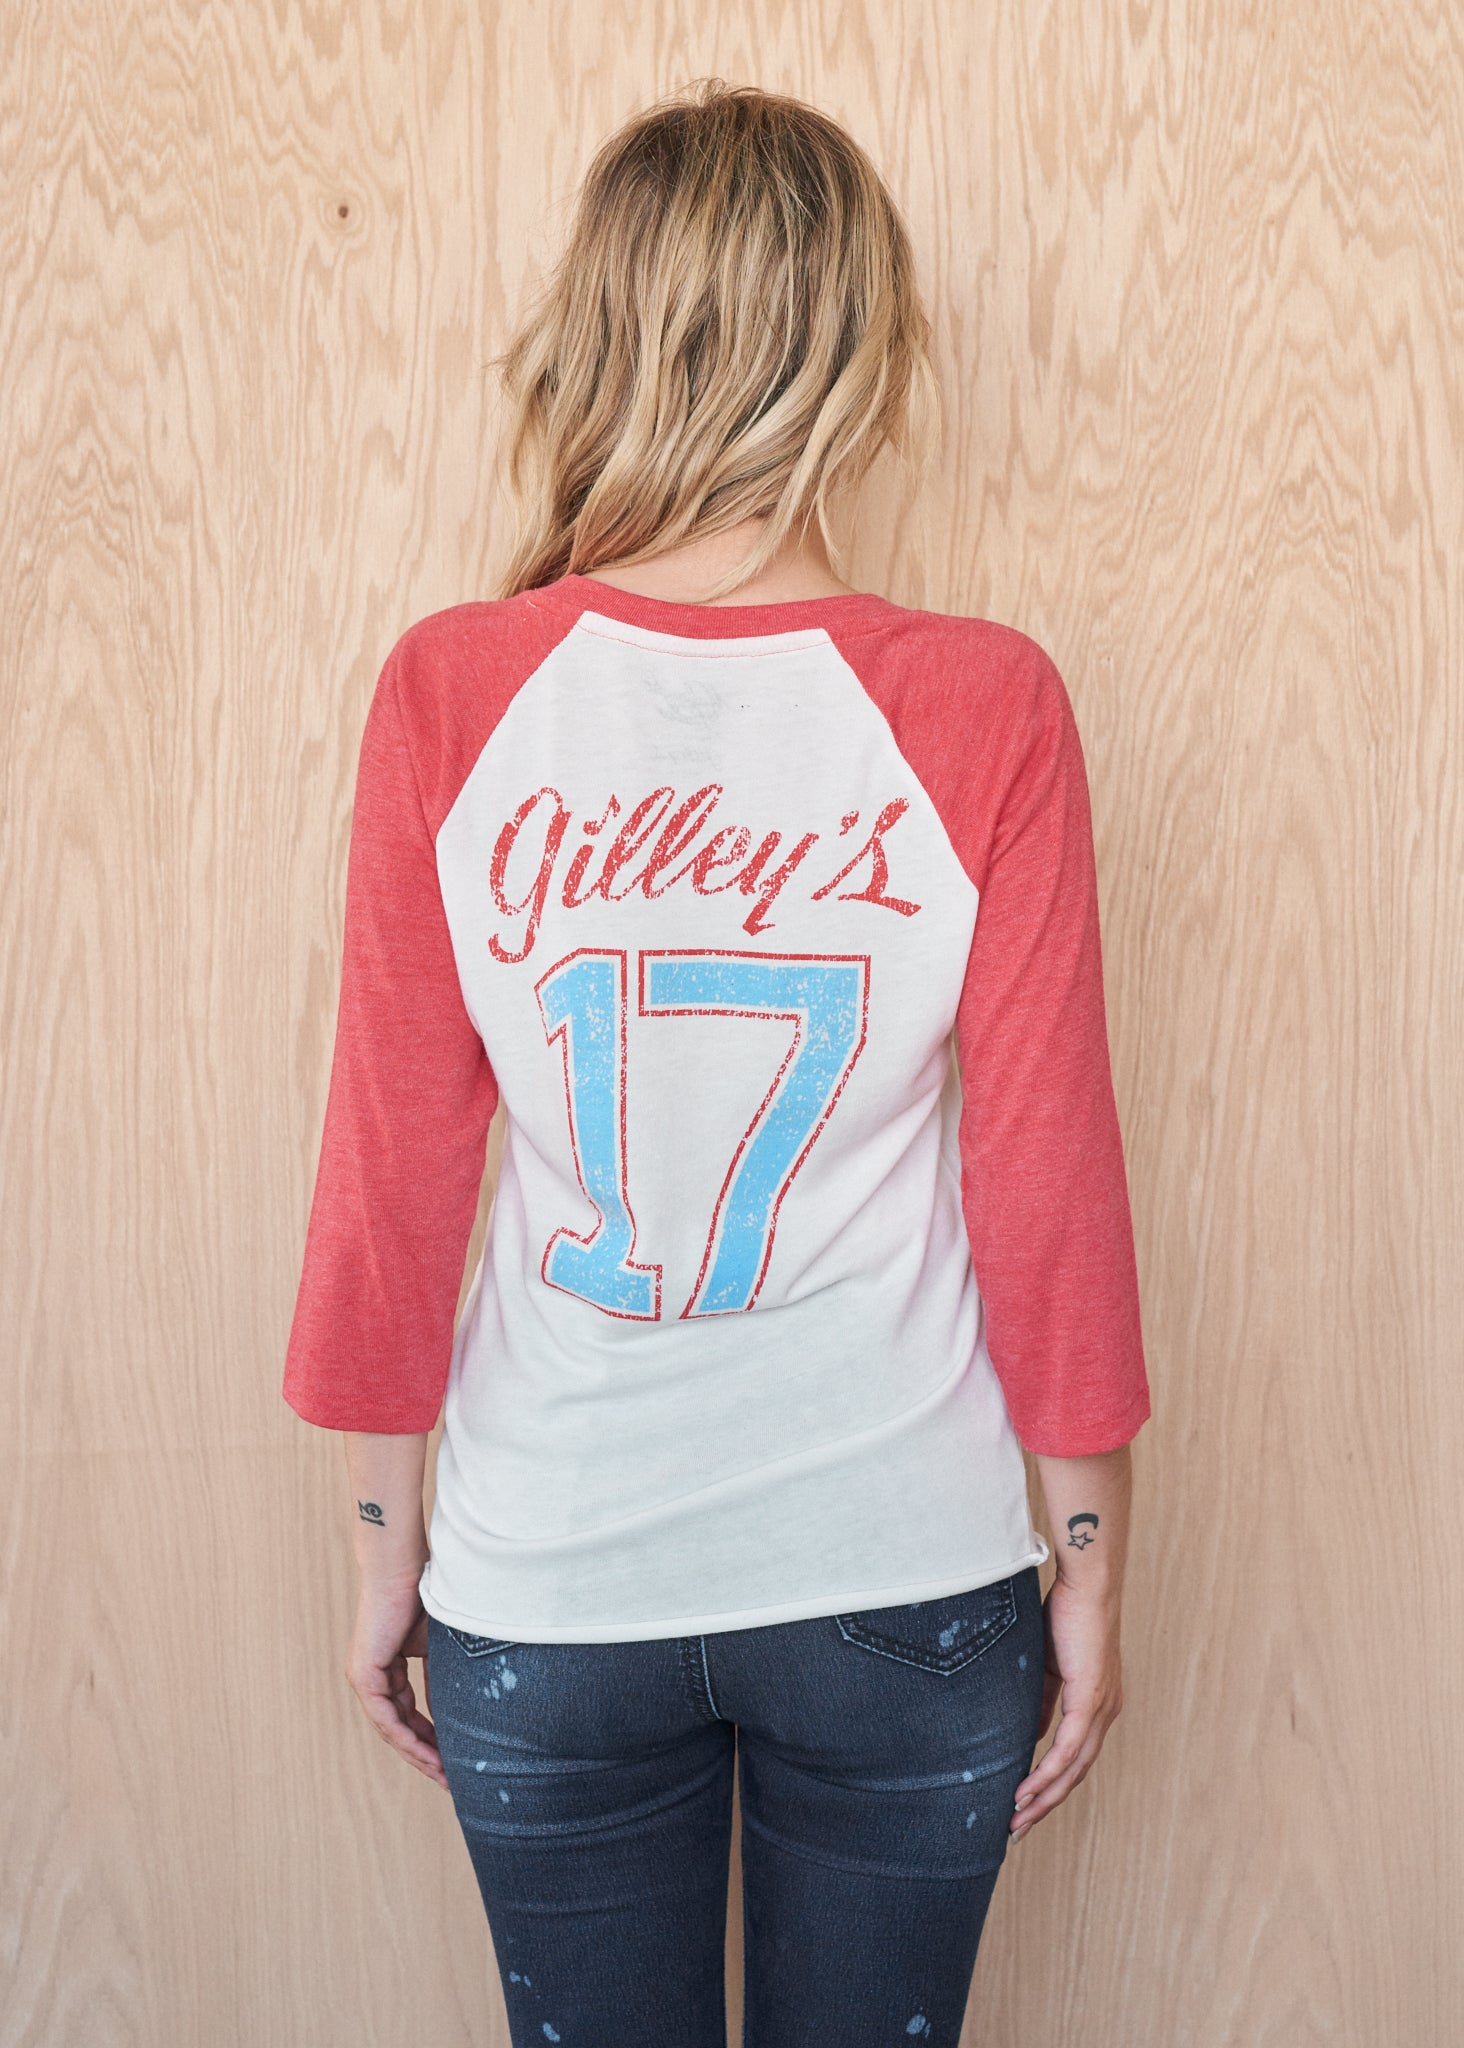 Gilley's #17 Baseball Tee